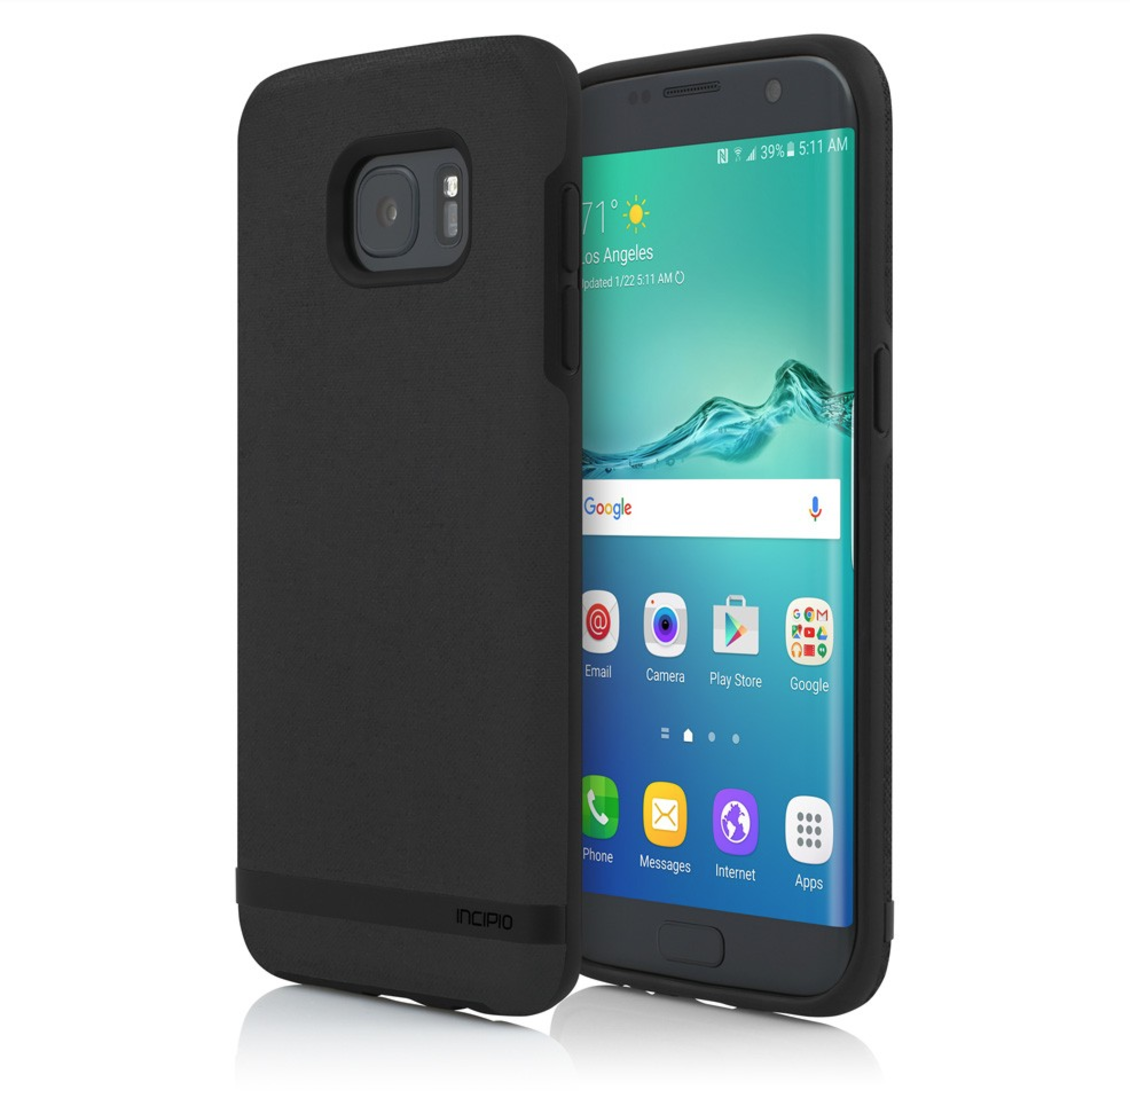 wholesale dealer c8d46 5b4c5 The best cases for the Galaxy S7 Edge | Greenbot